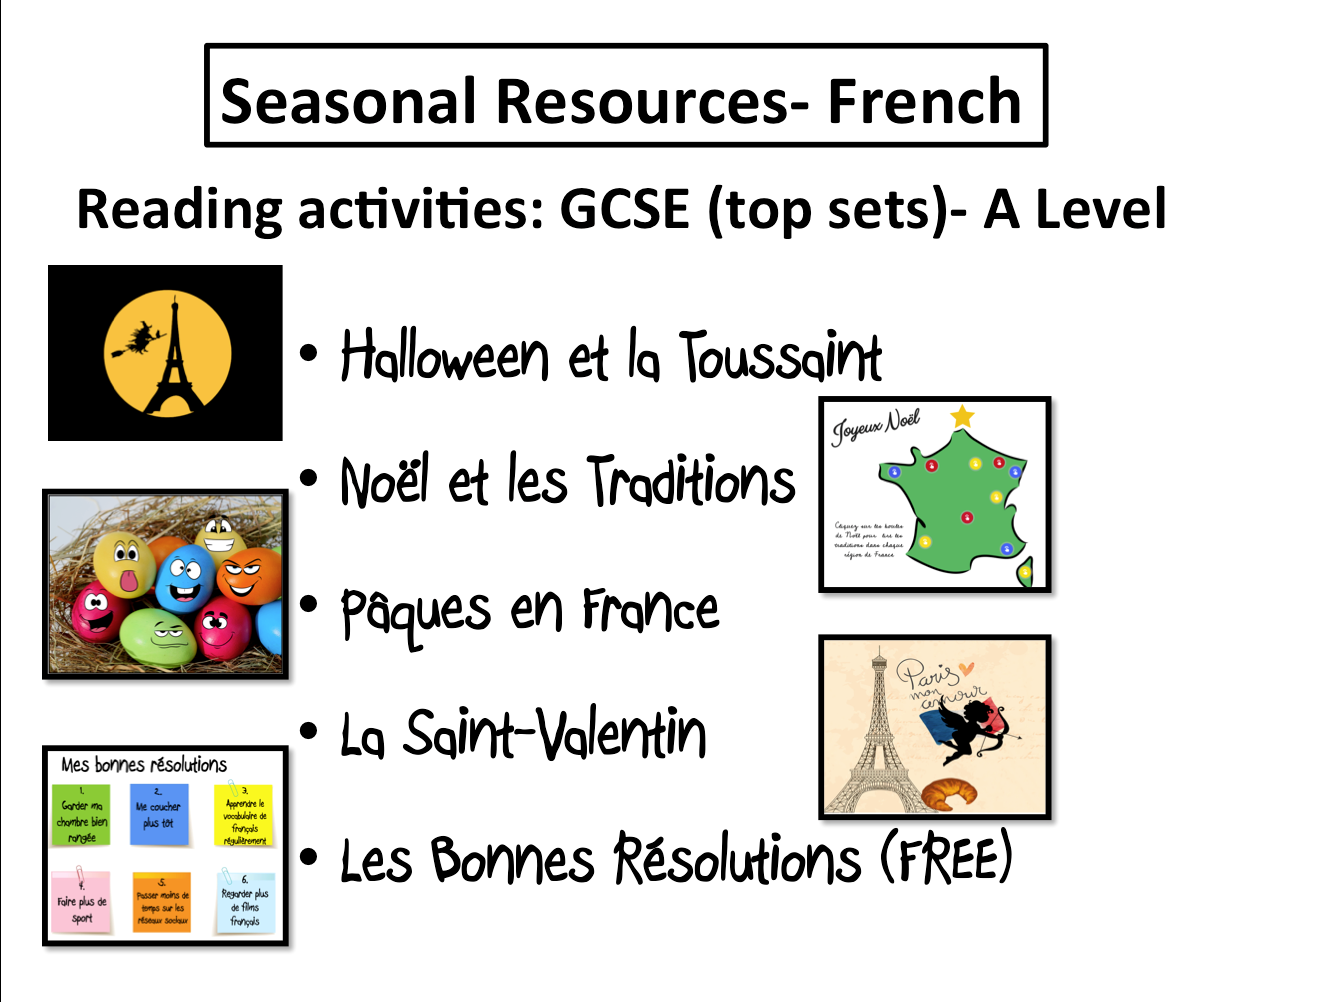 Seasonal Resources- Reading Activities- GCSE and A Level French